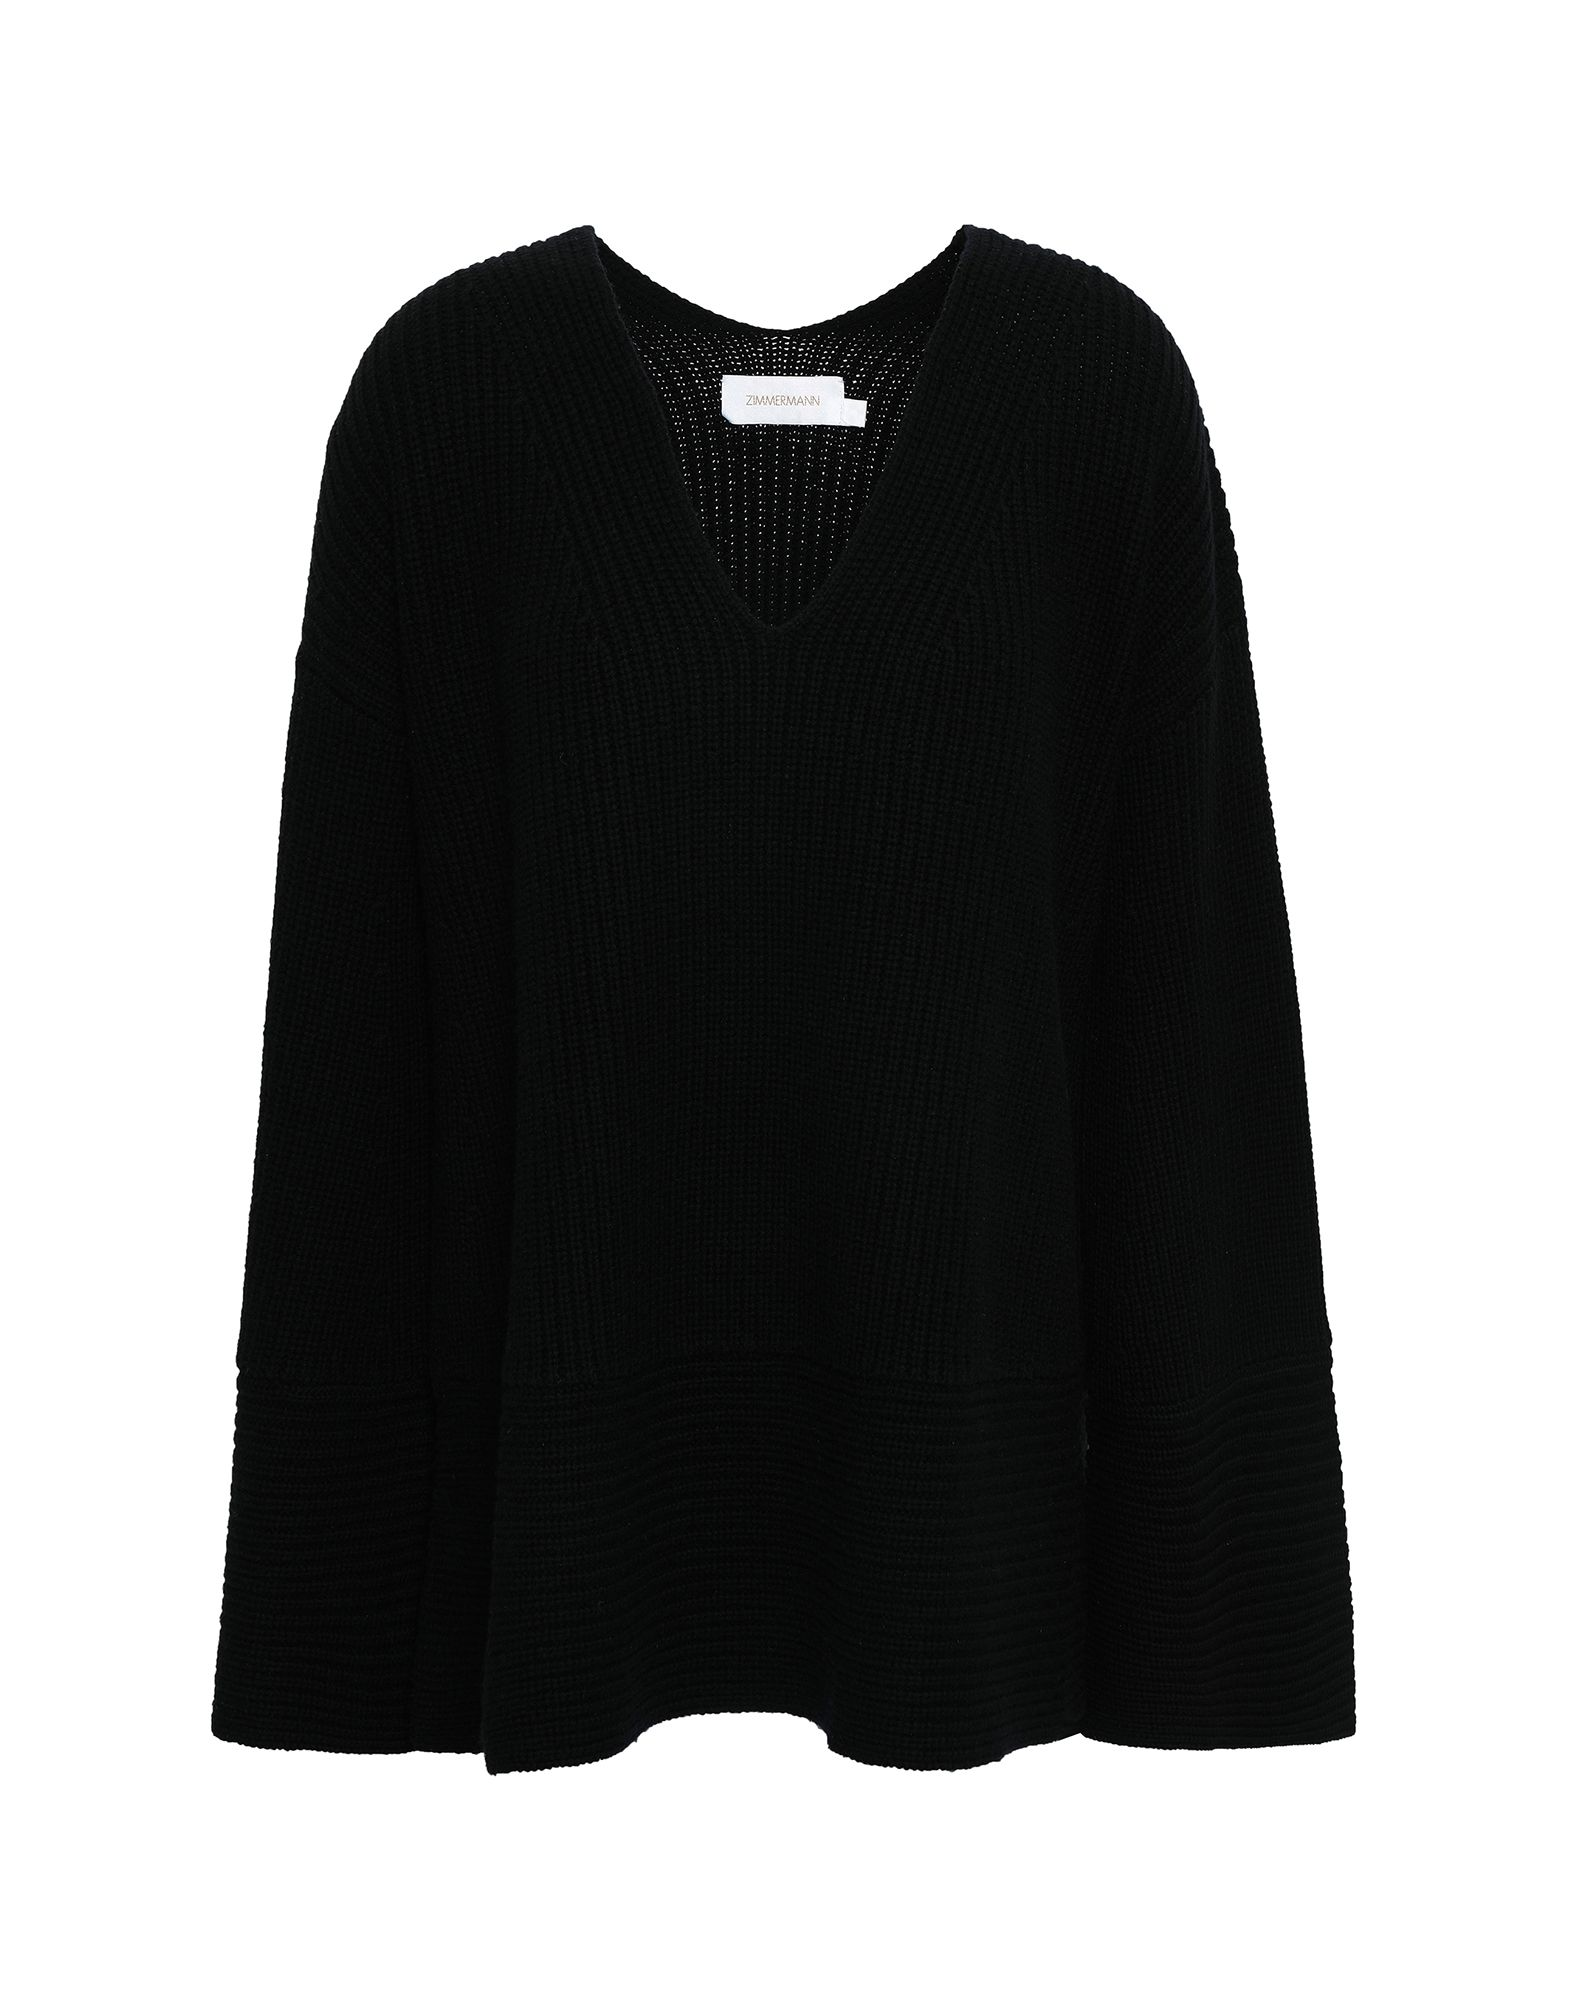 ZIMMERMANN Sweaters. knitted, ribbed, no appliqués, medium-weight knit, v-neck, basic solid color, long sleeves, no pockets. 90% Wool, 10% Cashmere